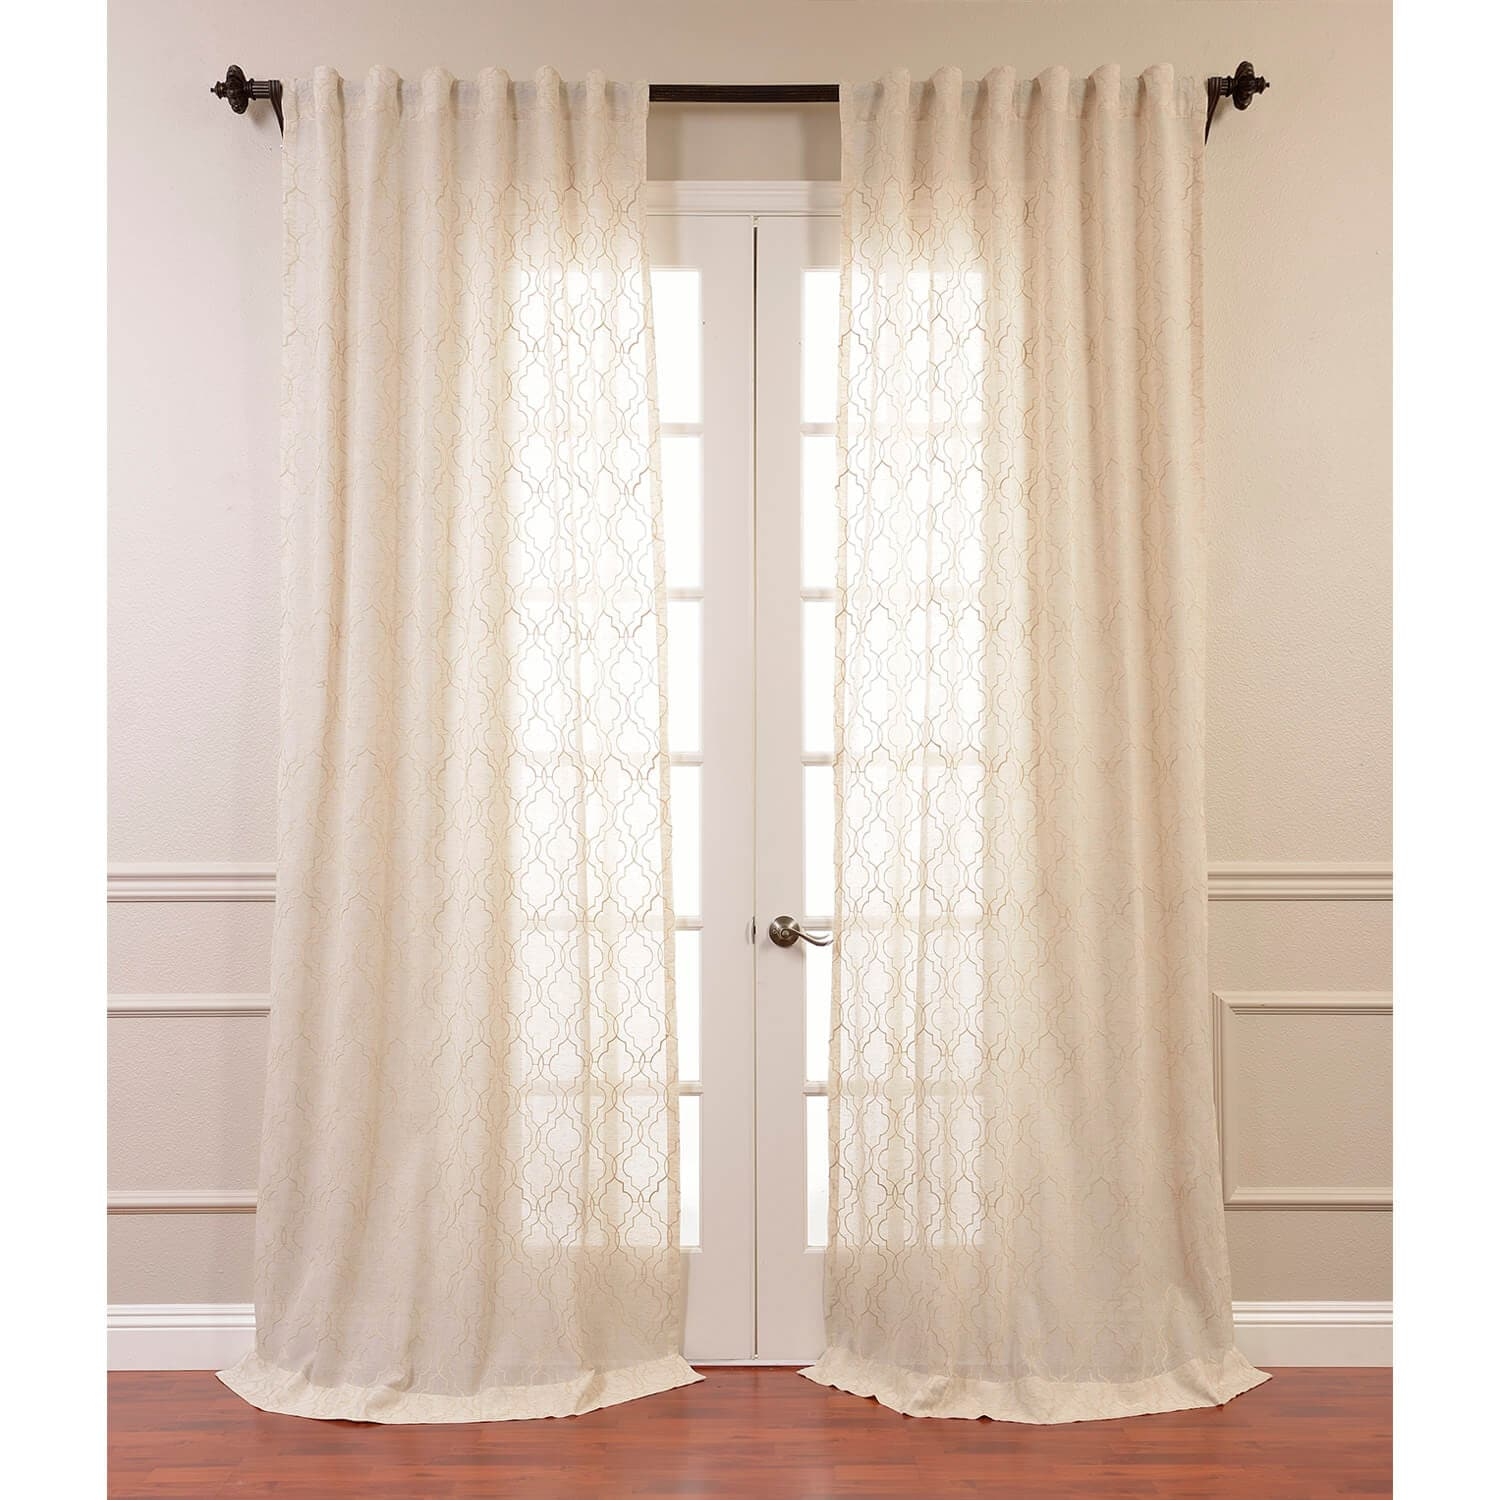 Saida Natural Embroidered Faux Linen Sheer Curtain